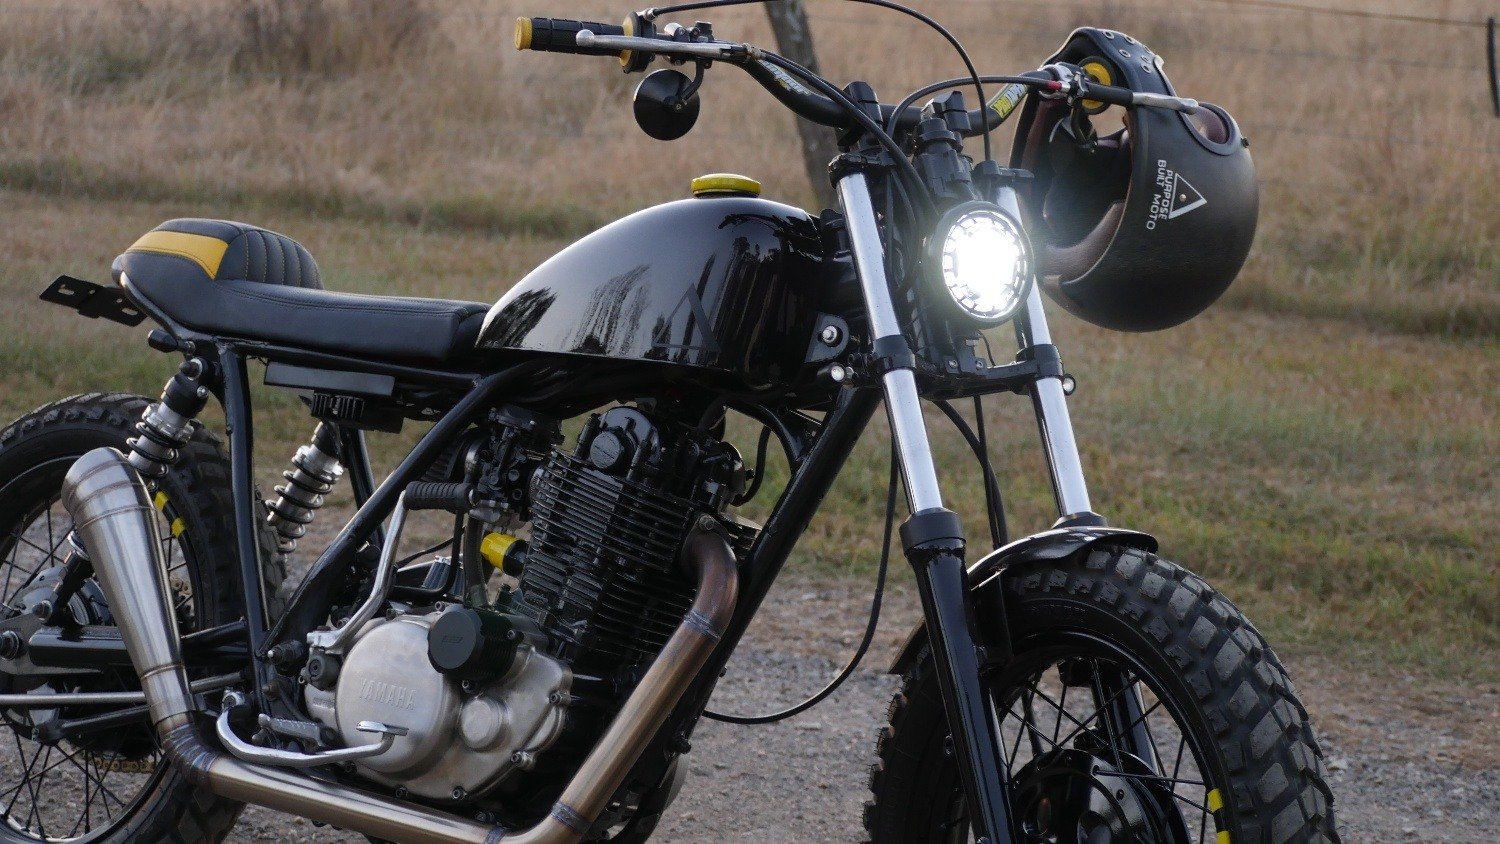 SR400 Scrambler parts LED lights Switches DNA filter